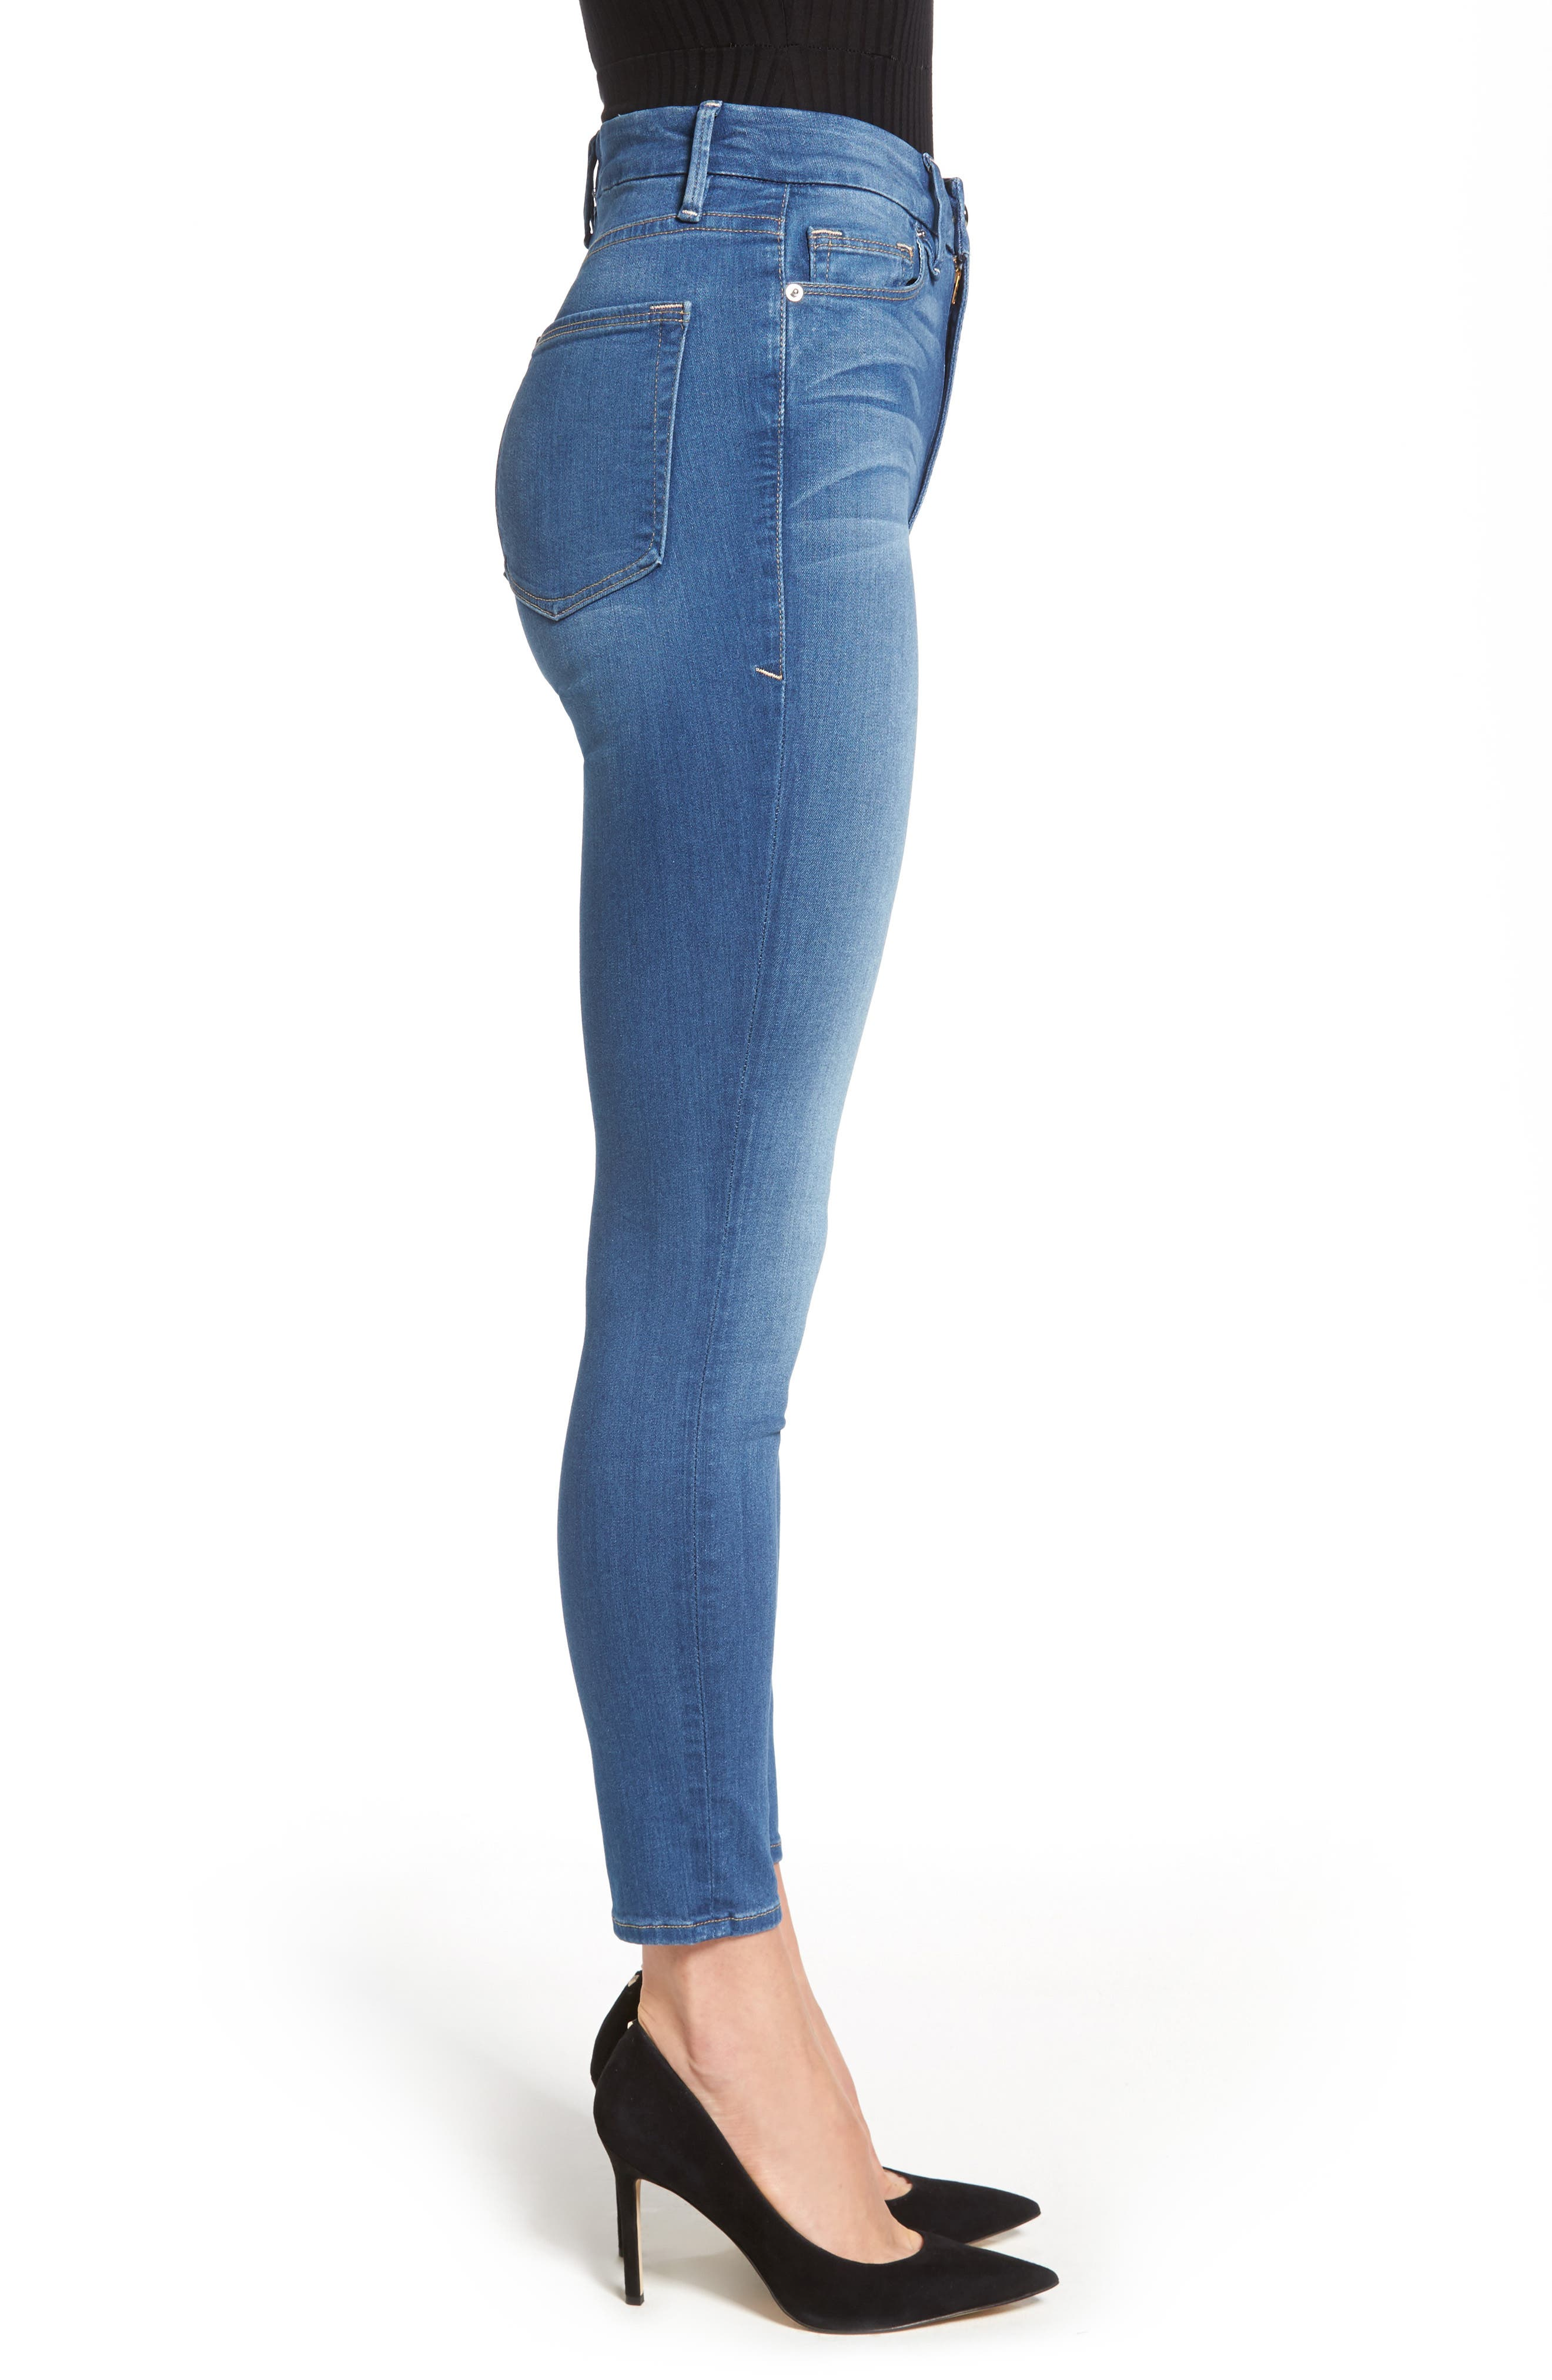 Alternate Image 3  - Good American Good Waist High Waist Crop Skinny Jeans (Blue 056) (Extended Sizes)